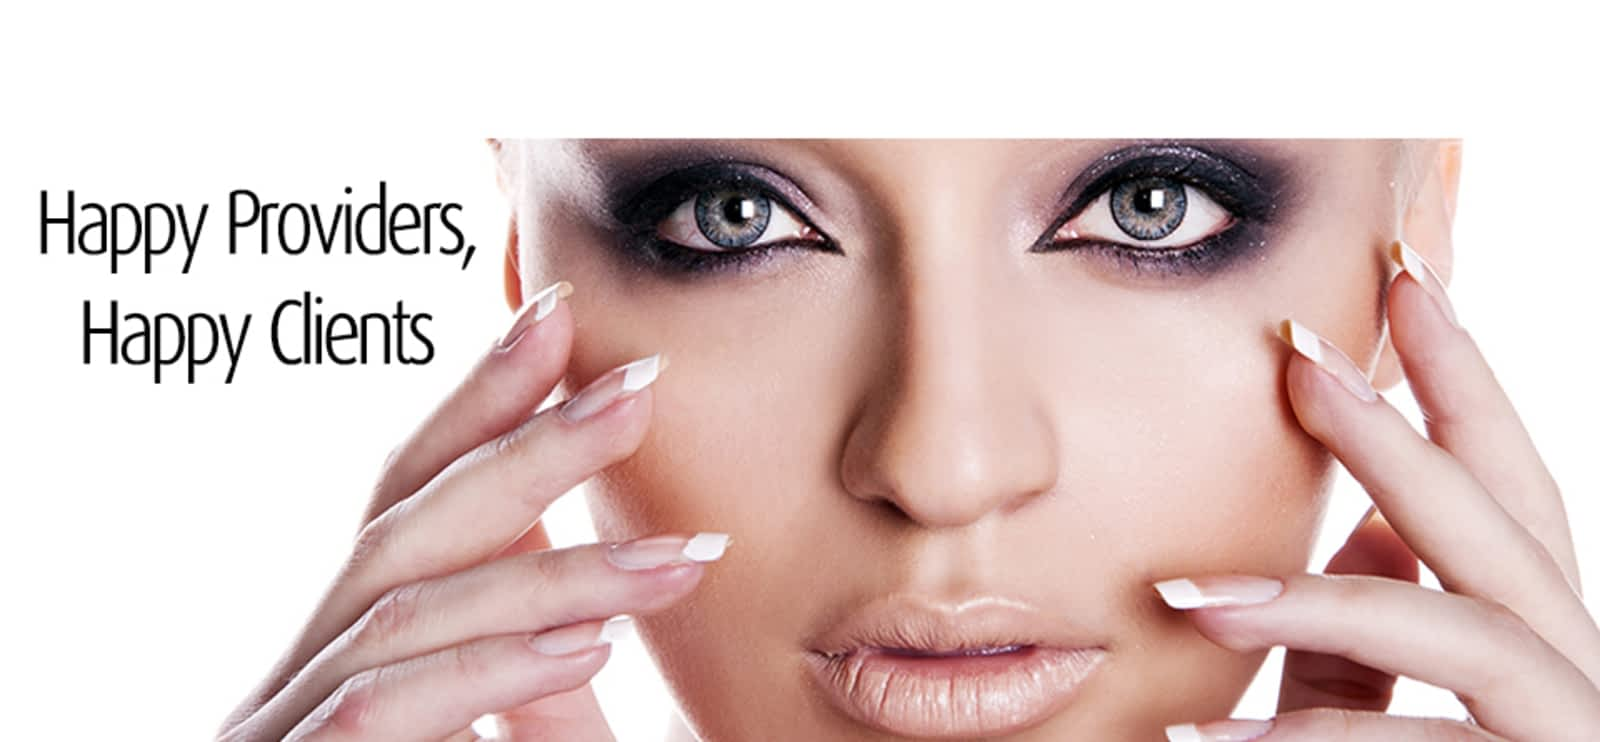 Le Spa Nails Opening Hours 8 1525 Bristol Rd W Mississauga On